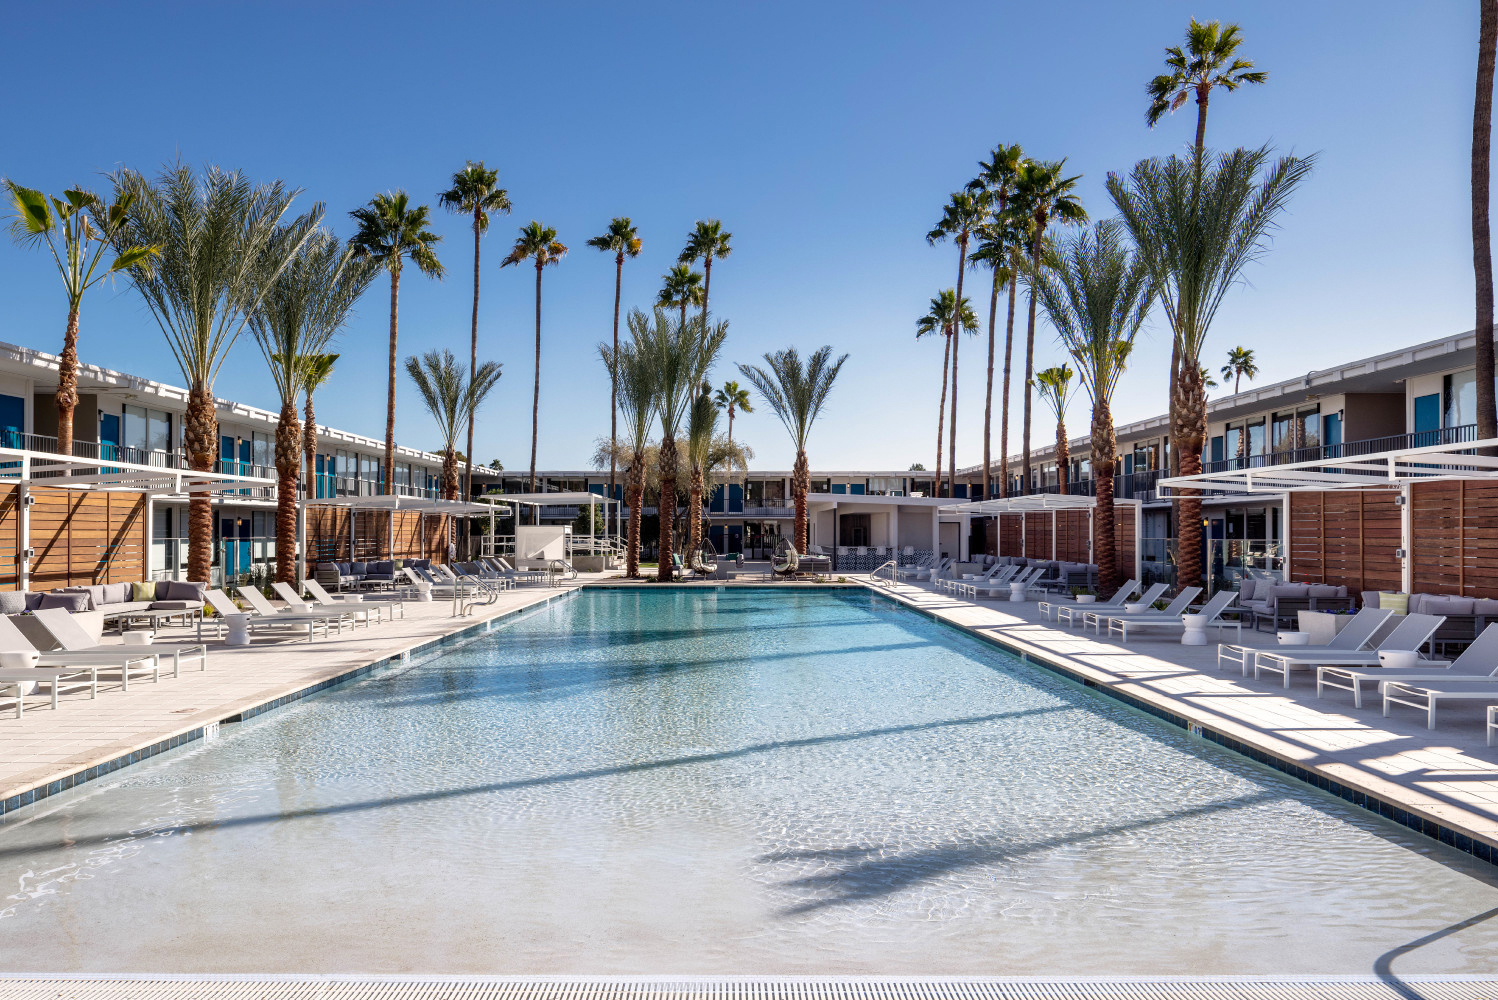 It has a view of Camelback Mountain, 16 cabanas, a fire pit and courtyards with lawn games. At the center of it all is Freestyle, the hotel's pool bar.